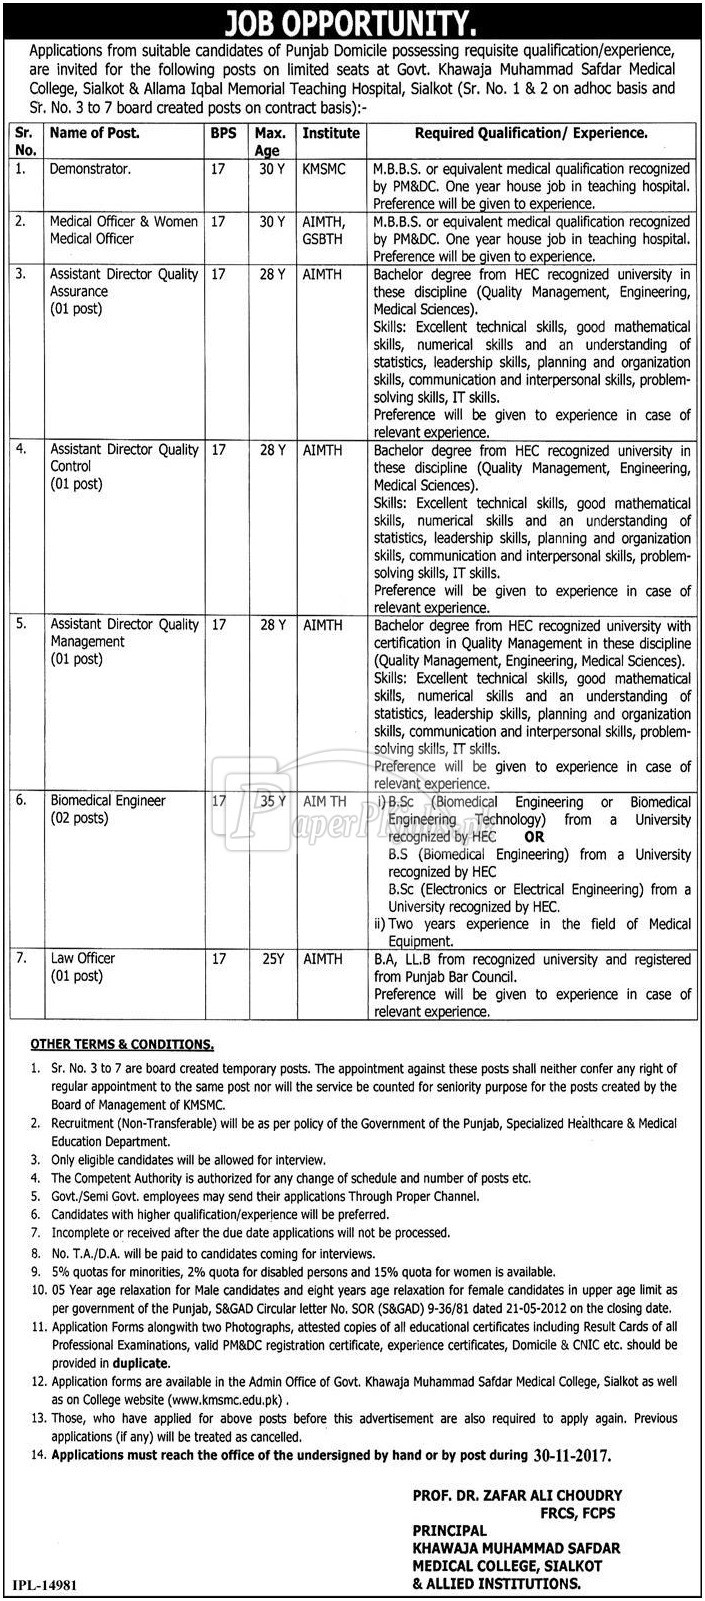 Govt Khawaja Muhammad Safdar Medical College Sialkot & Allied Institutions Jobs 2017